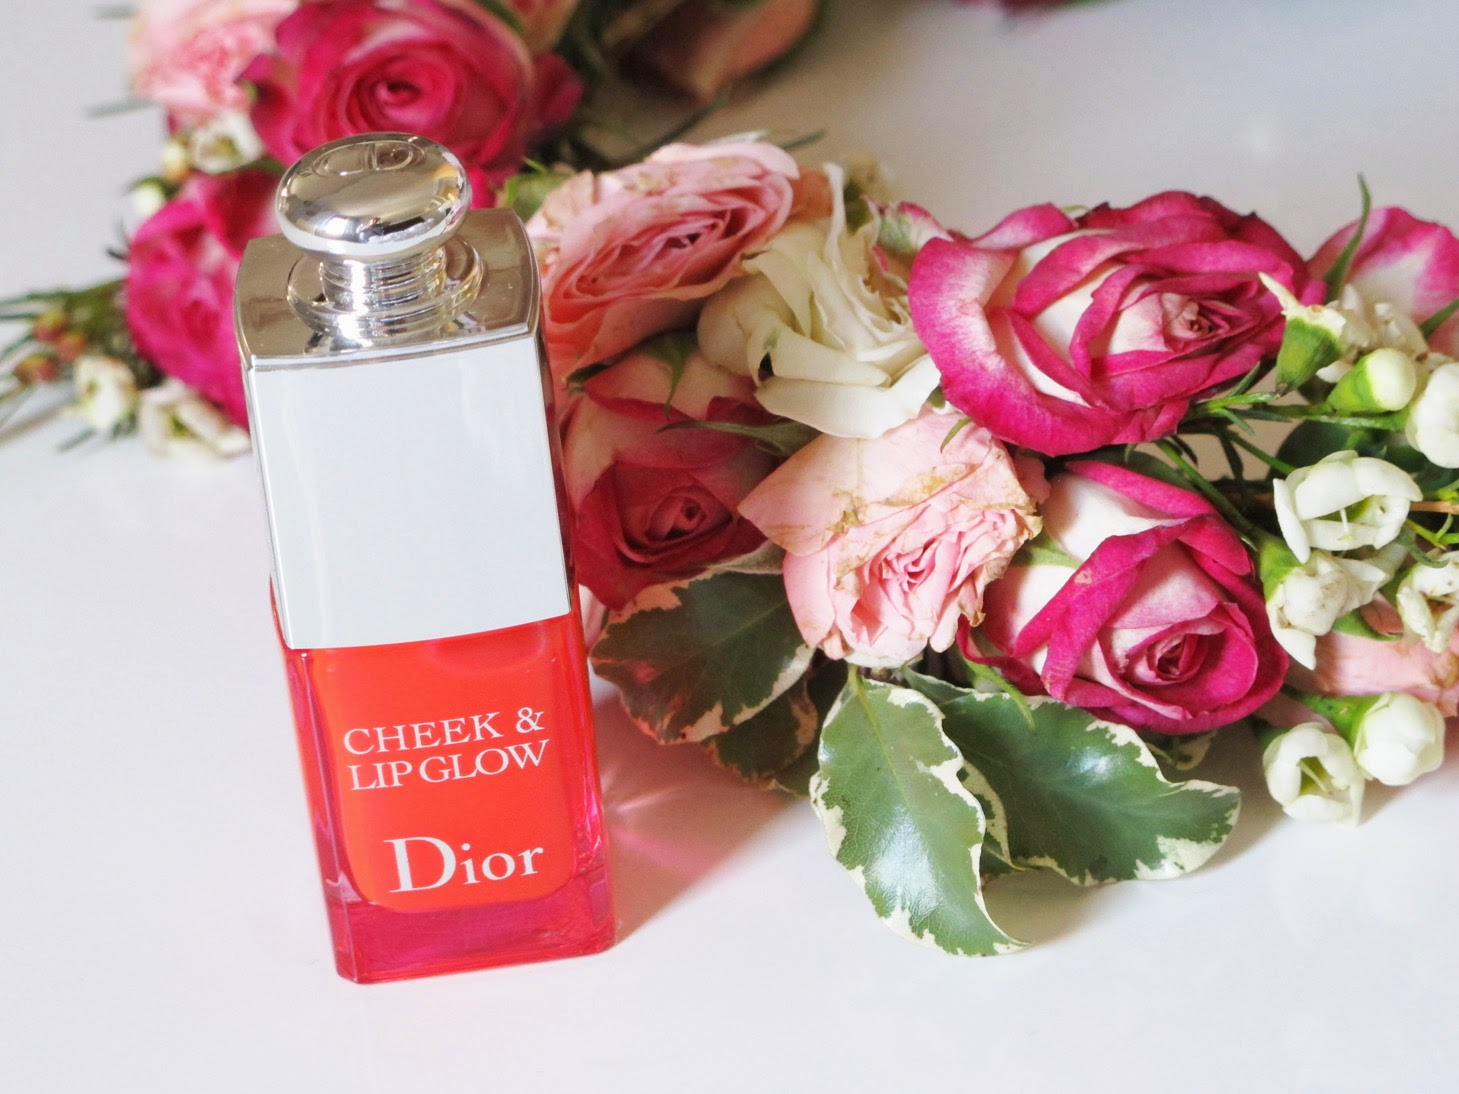 Cheek & Lip Glow Dior